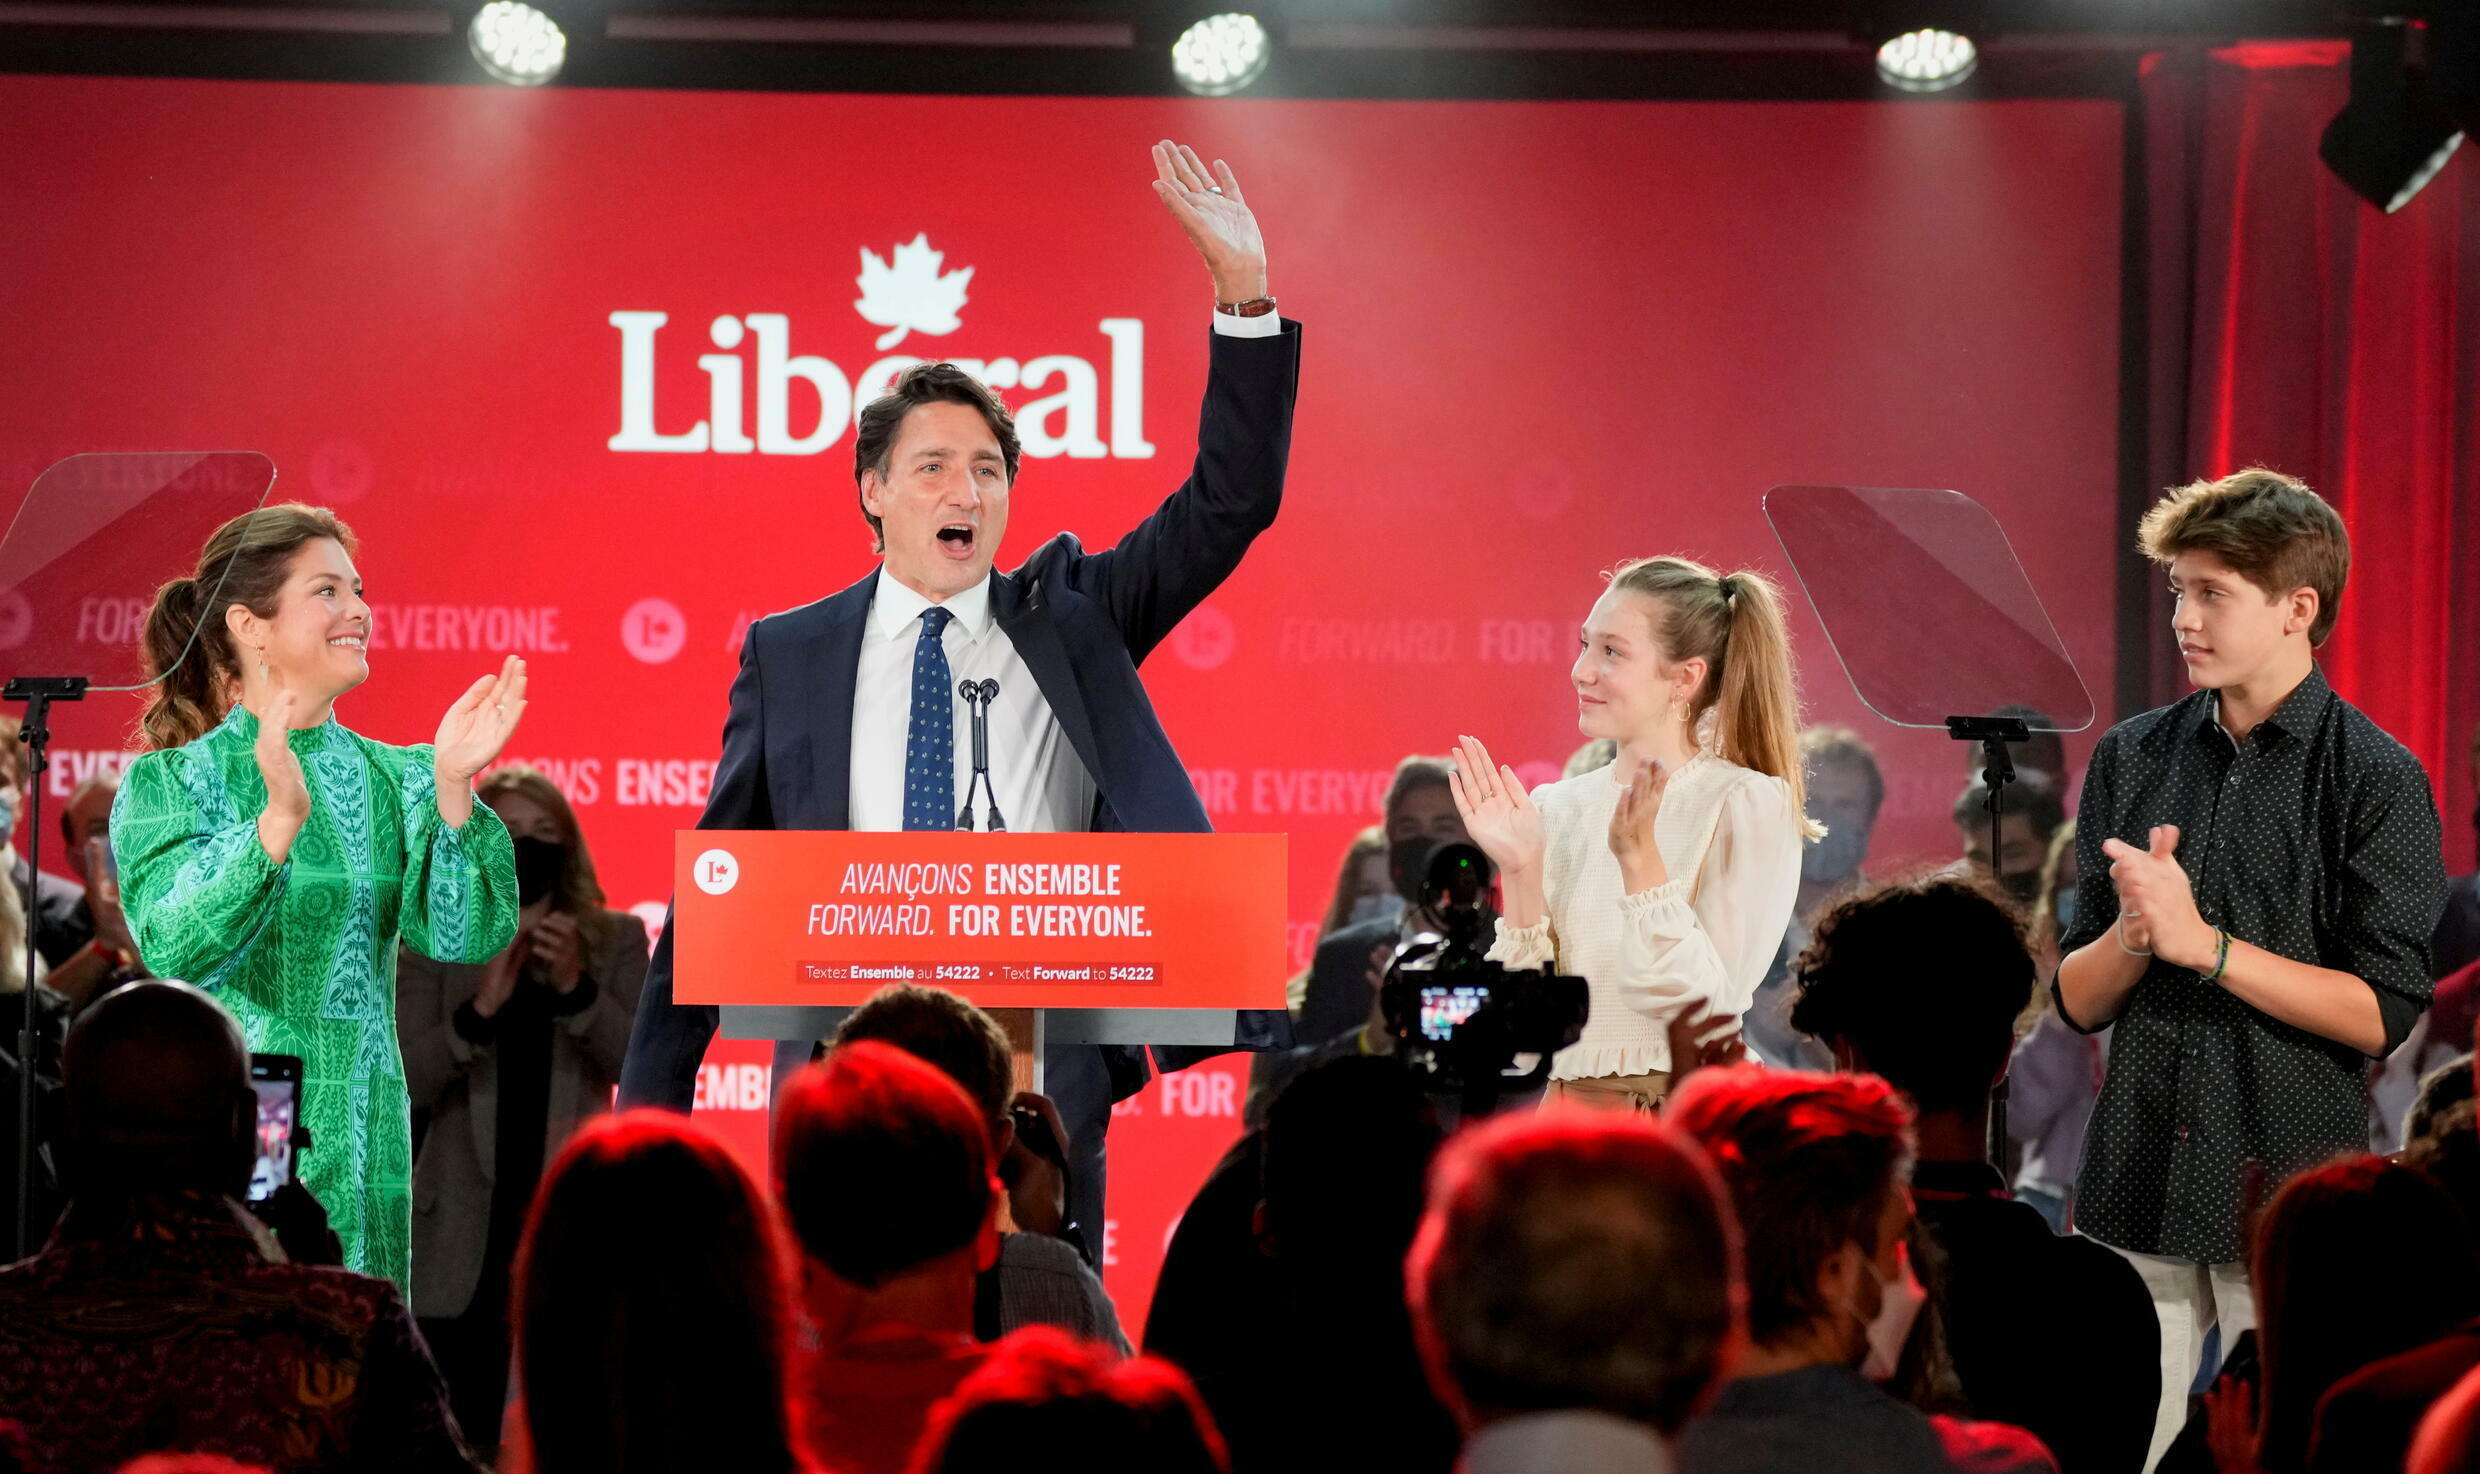 2021-09-21T054118Z_545719713_RC25UP9XYGMZ_RTRMADP_3_CANADA-ELECTION